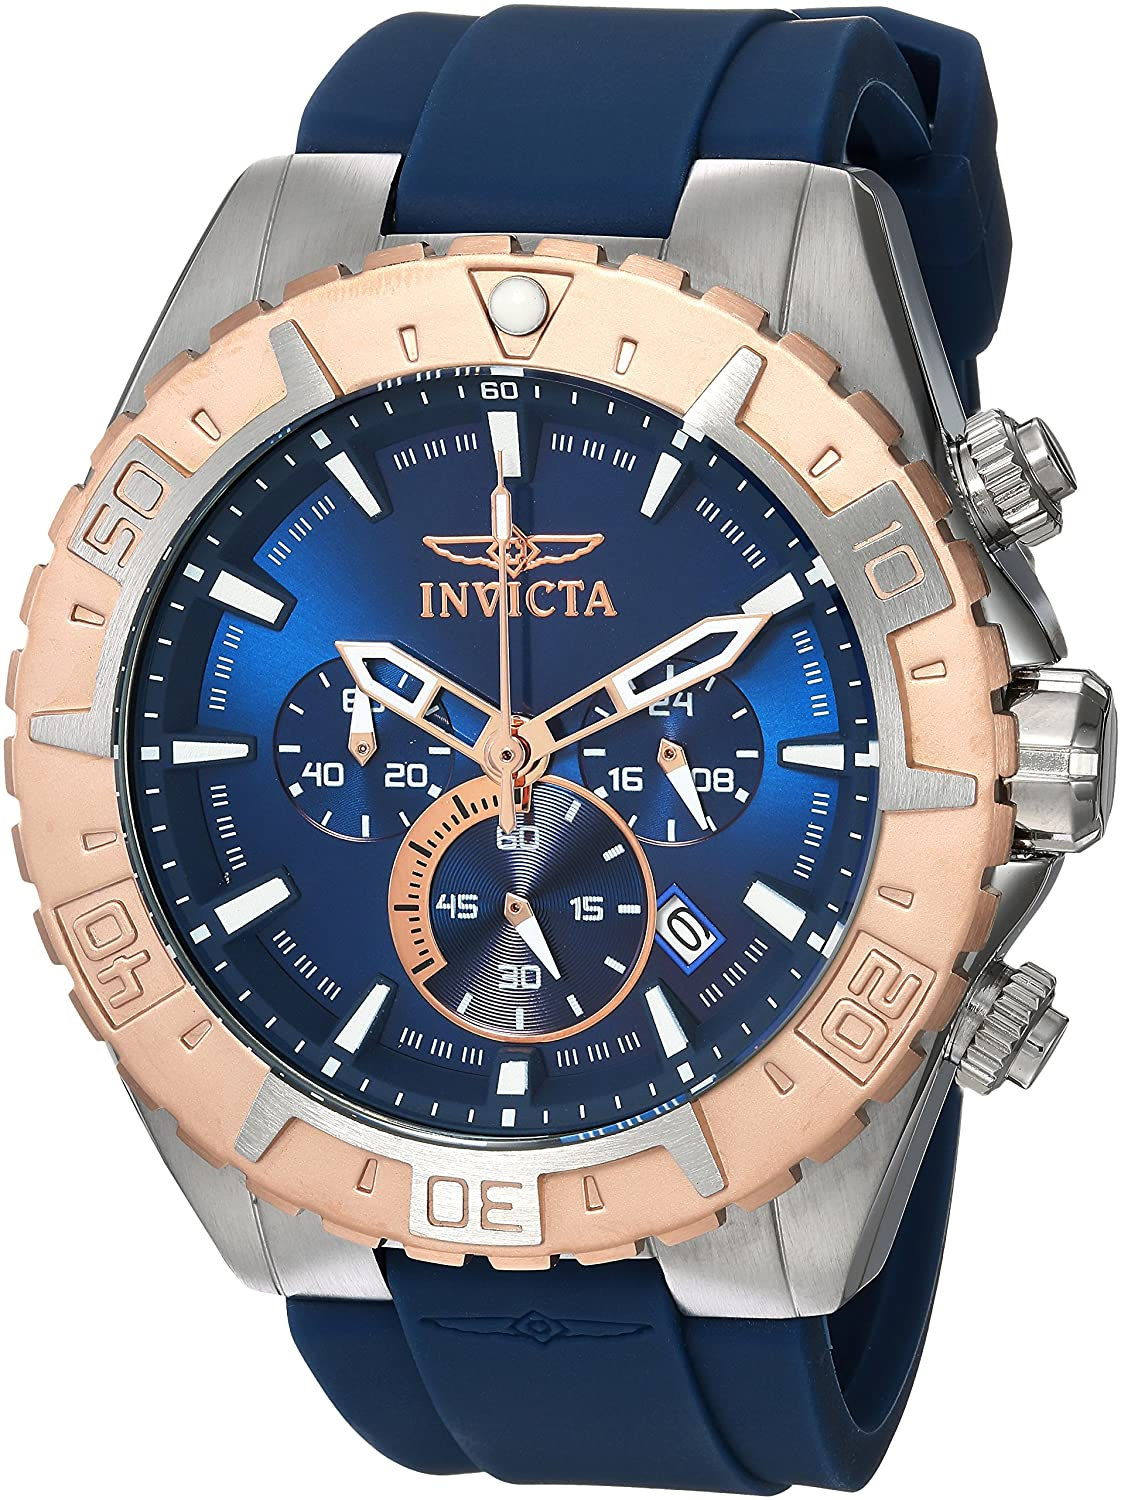 Invicta Men s Aviator Stainless Steel Quartz Watch with Silicone Strap, Blue, 26 Model 22523